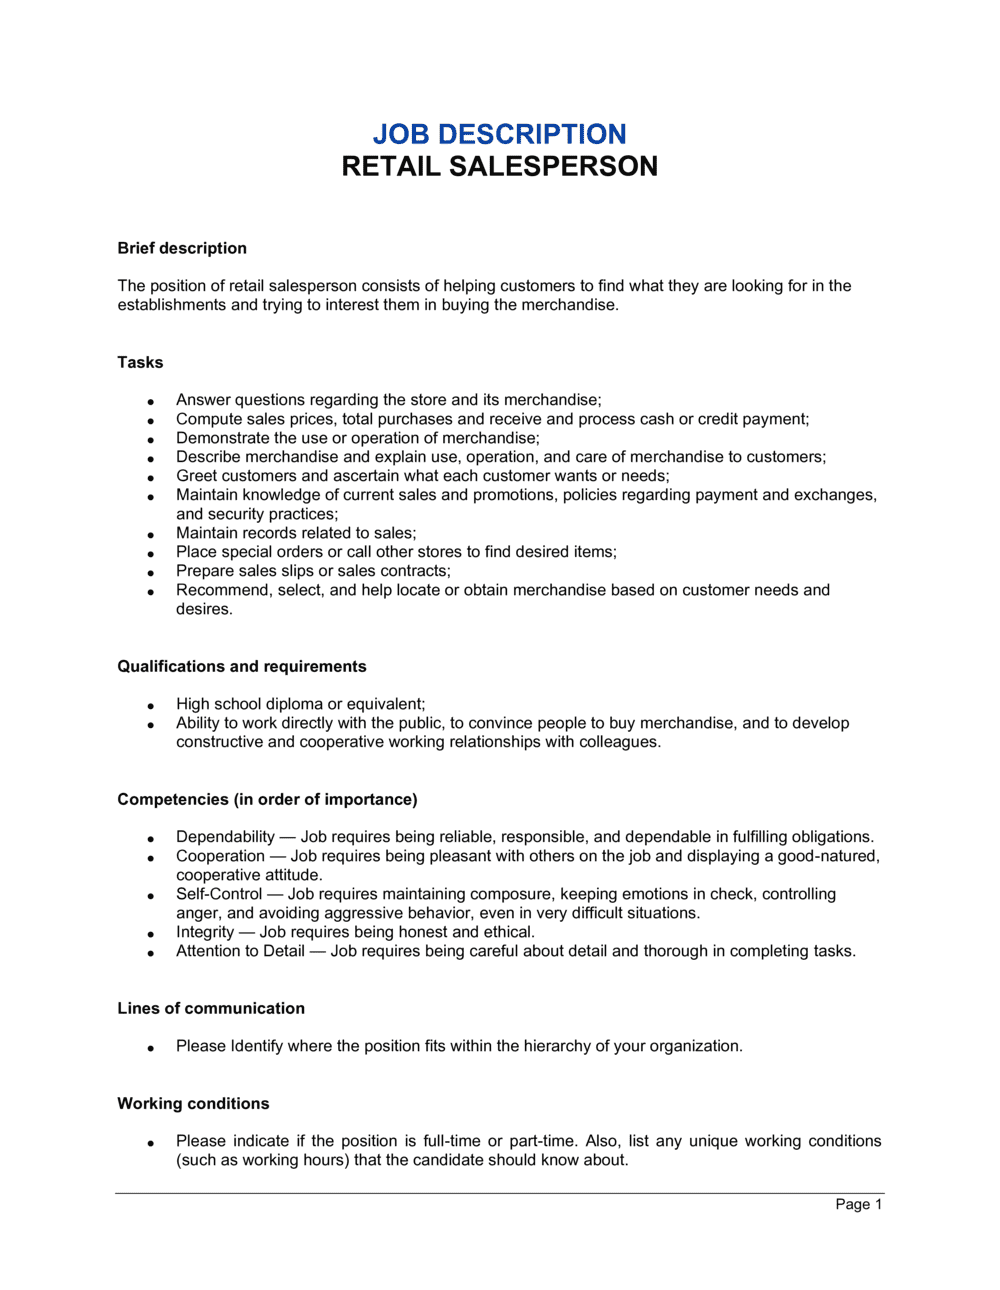 Business-in-a-Box's Retail Salesperson Job Description Template